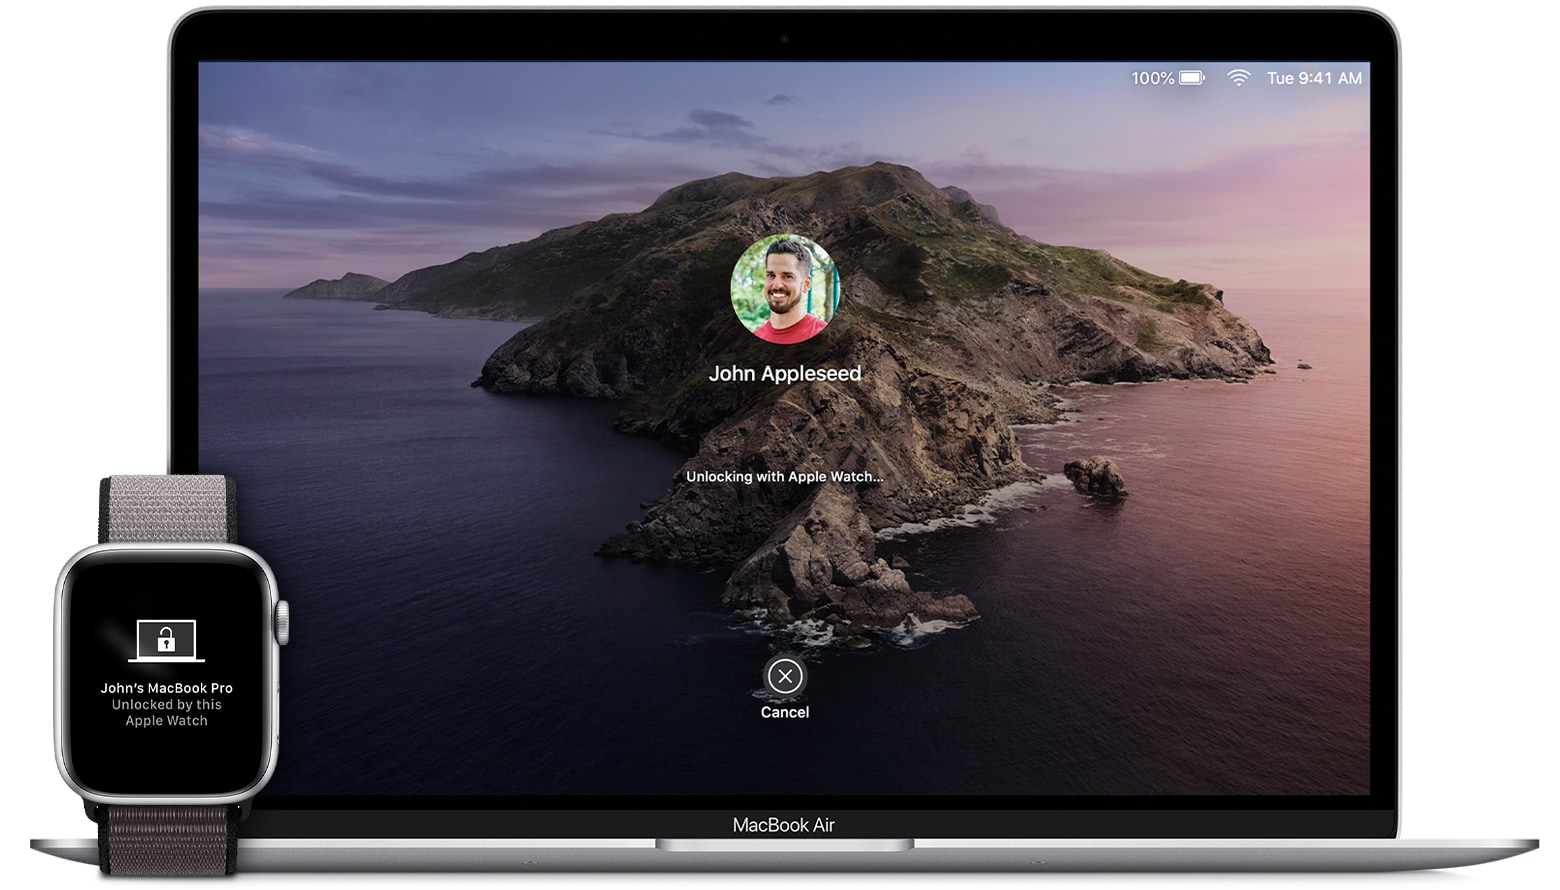 Sbloccare il Mac con Apple Watch